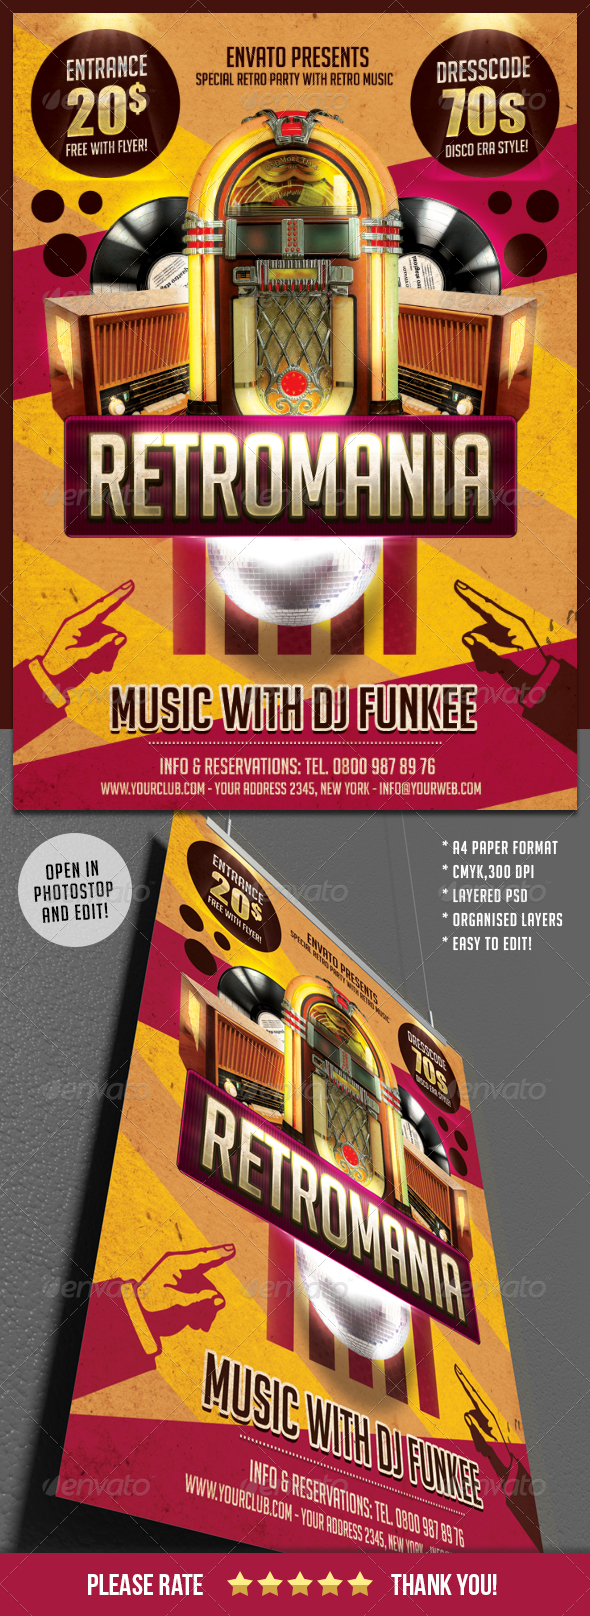 Retromania Party Flyer Template - Clubs & Parties Events